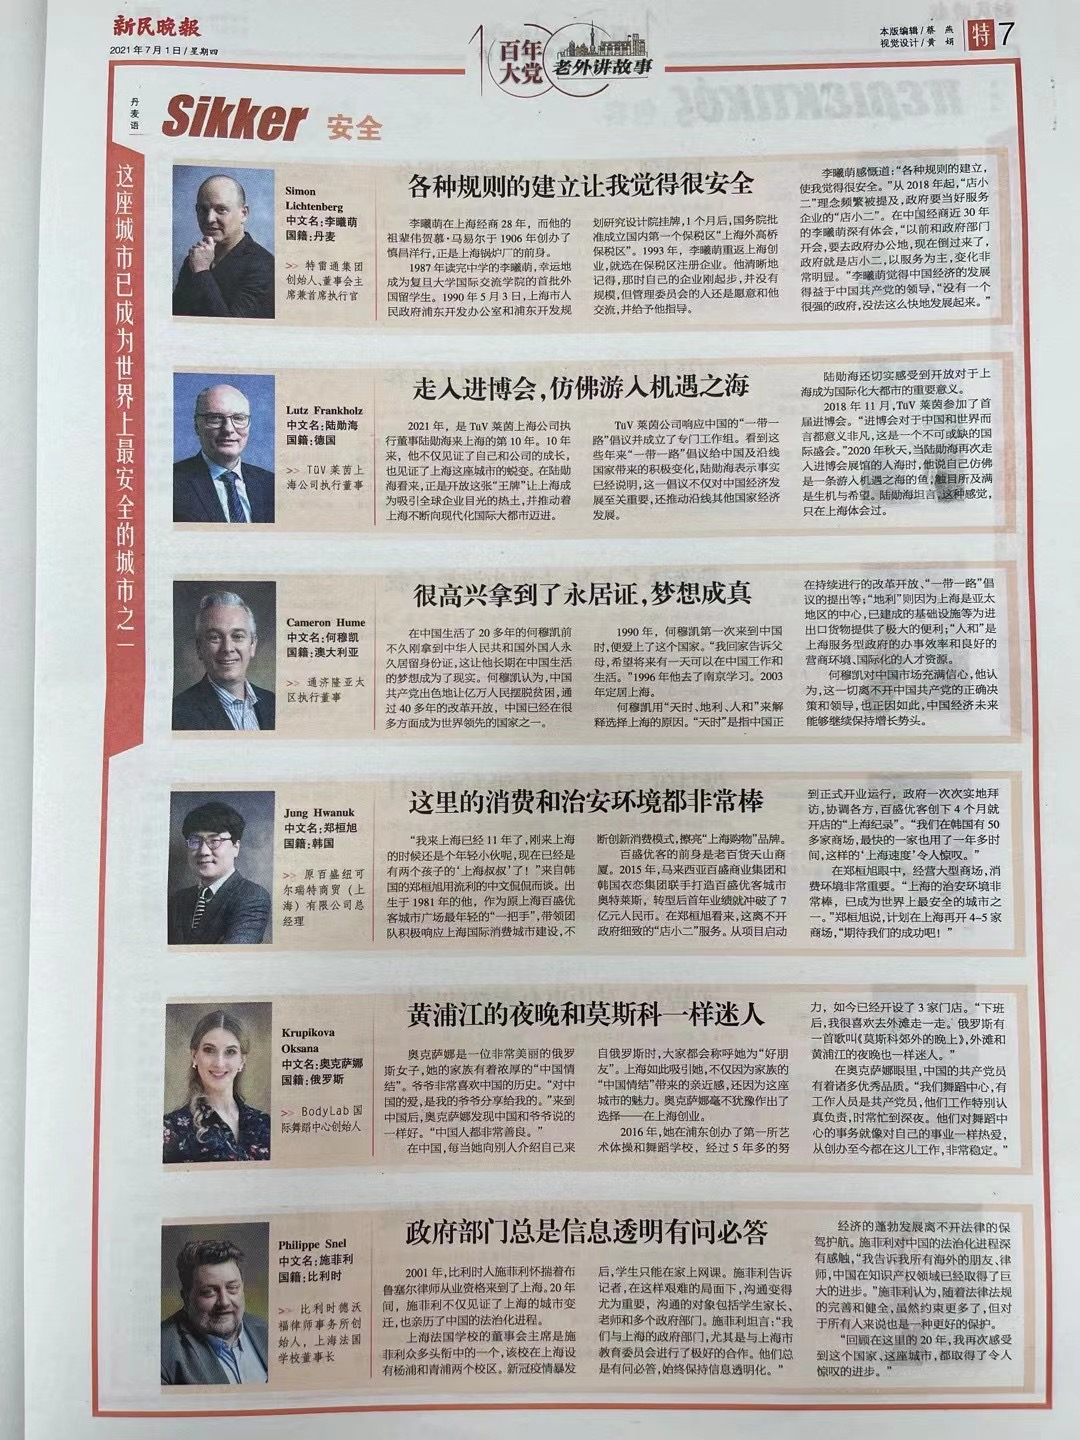 100 years of the CPC – Philippe Snel was interviewed by Xinmin Newspaper